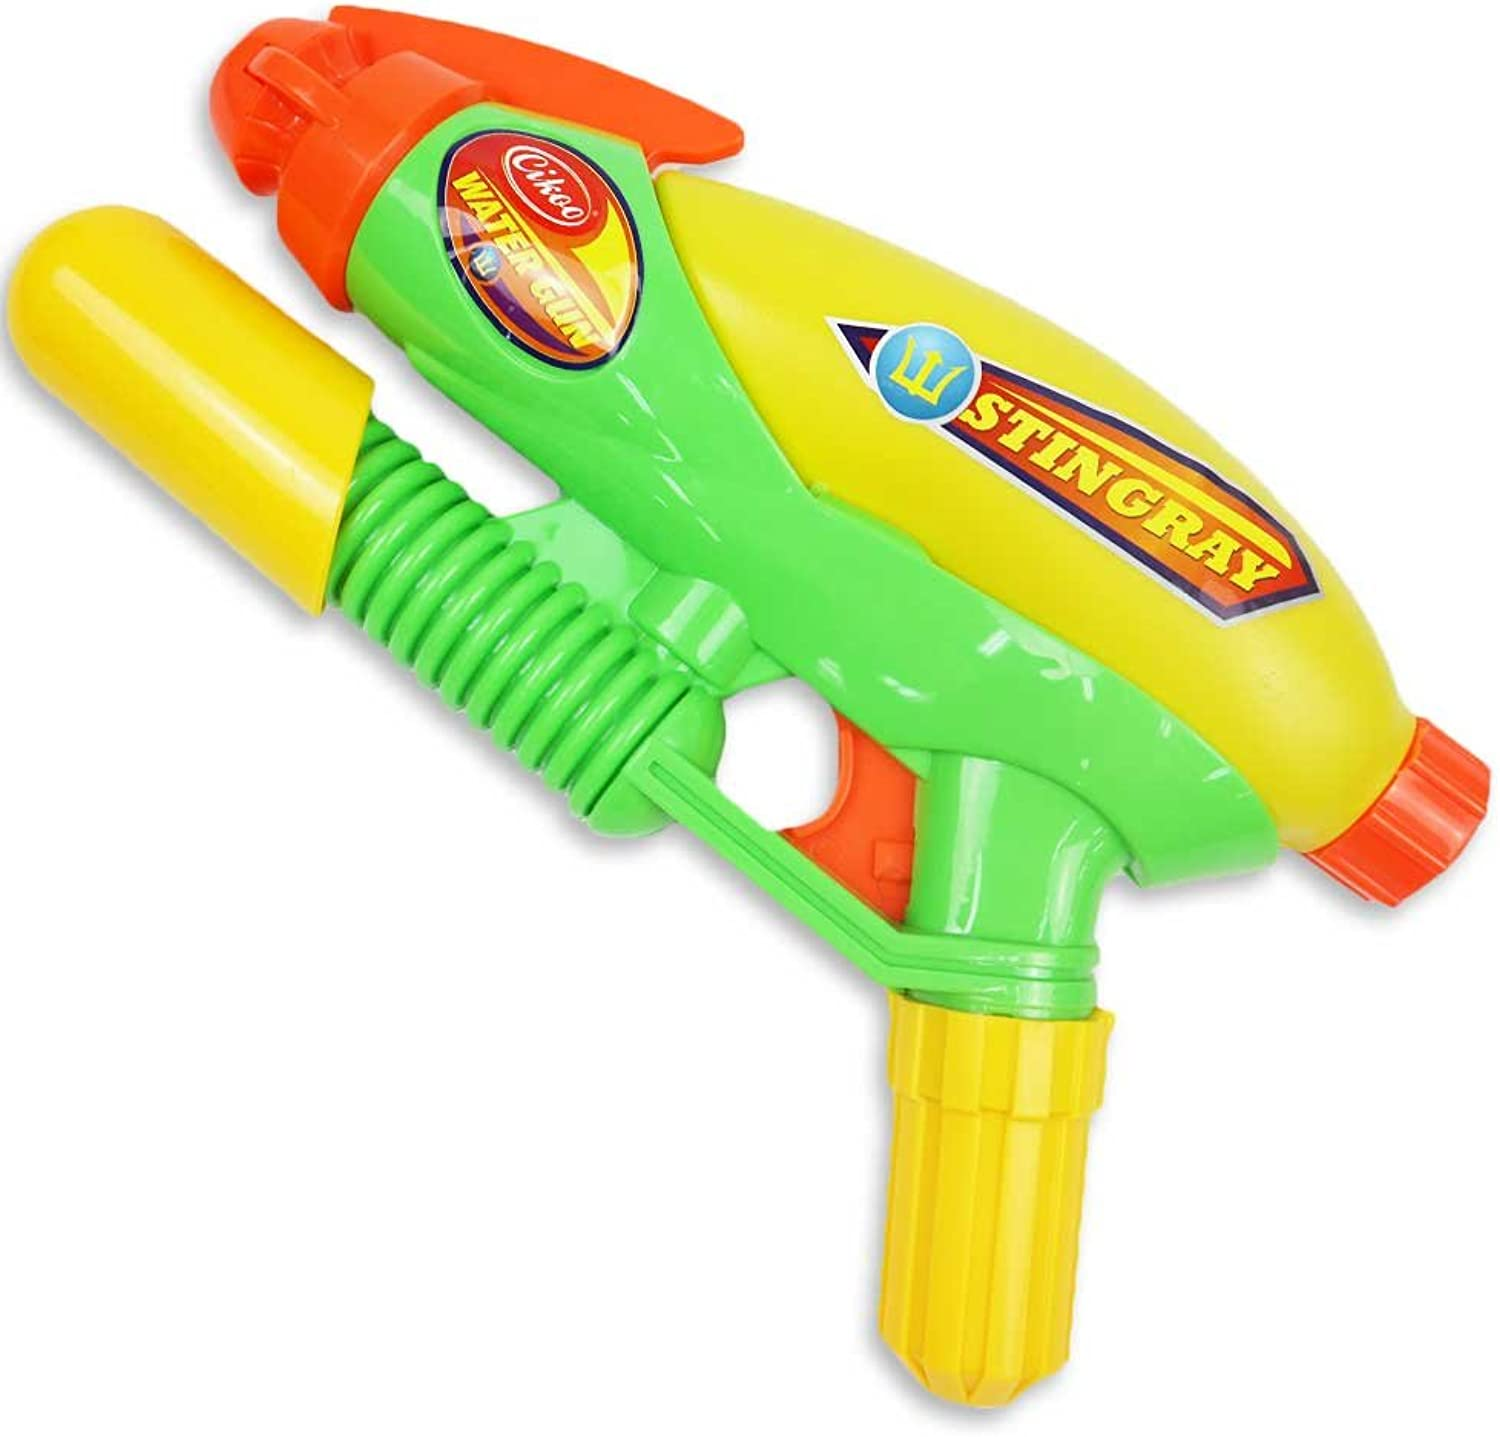 Relief and trust water gun super strong cool distance tank outdoors beach goods toys playing in the water